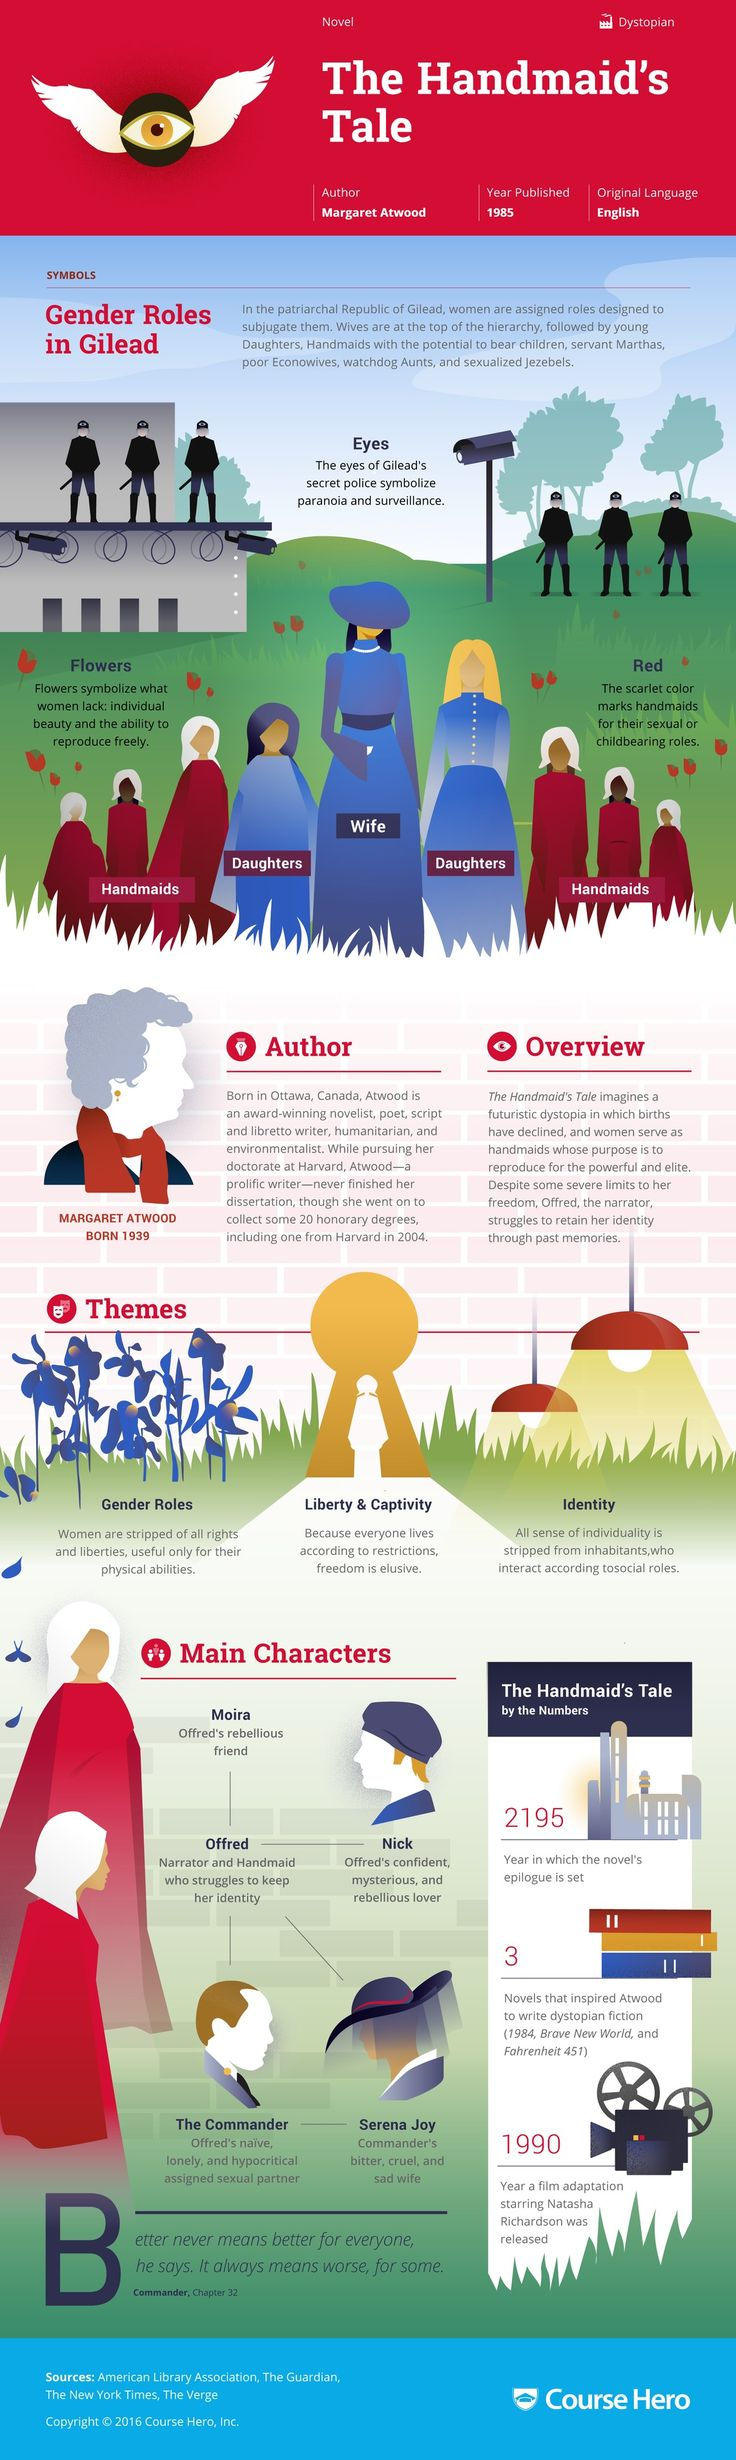 best images about literature infographics heart study guide for margaret atwood s the handmaid s tale including chapter summary character analysis and more learn all about the handmaid s tale